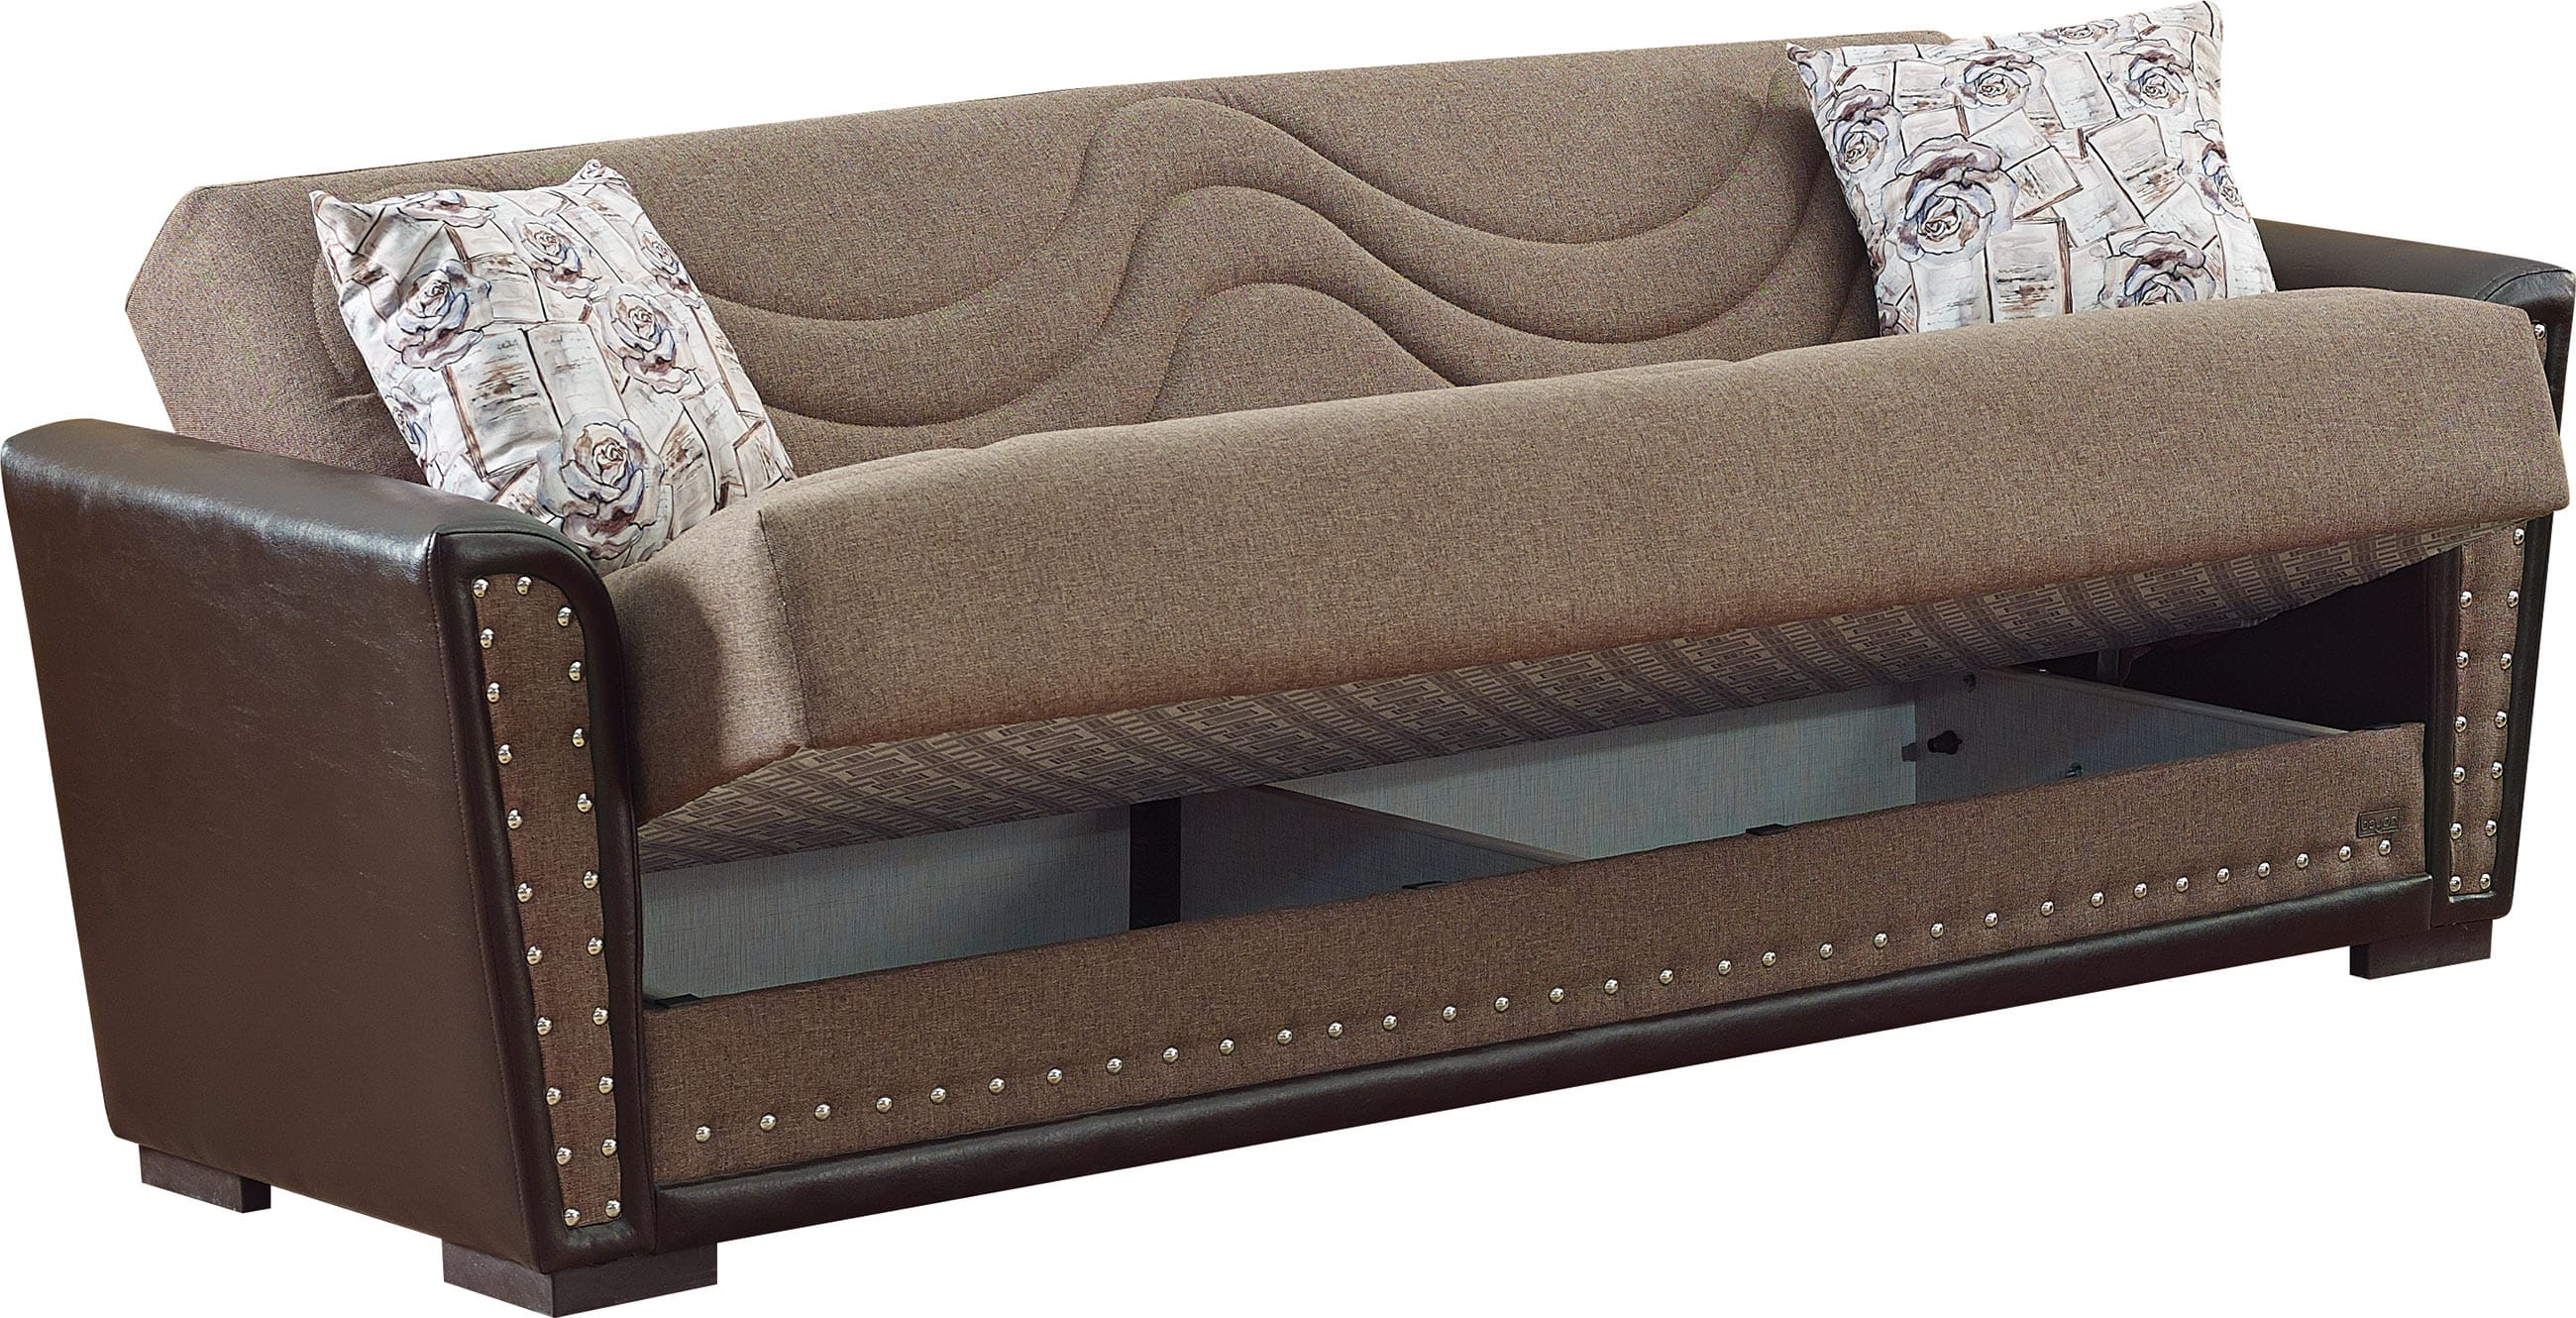 Toronto Sofa Toronto Brown Fabric Sofa Bed By Empire Furniture Usa